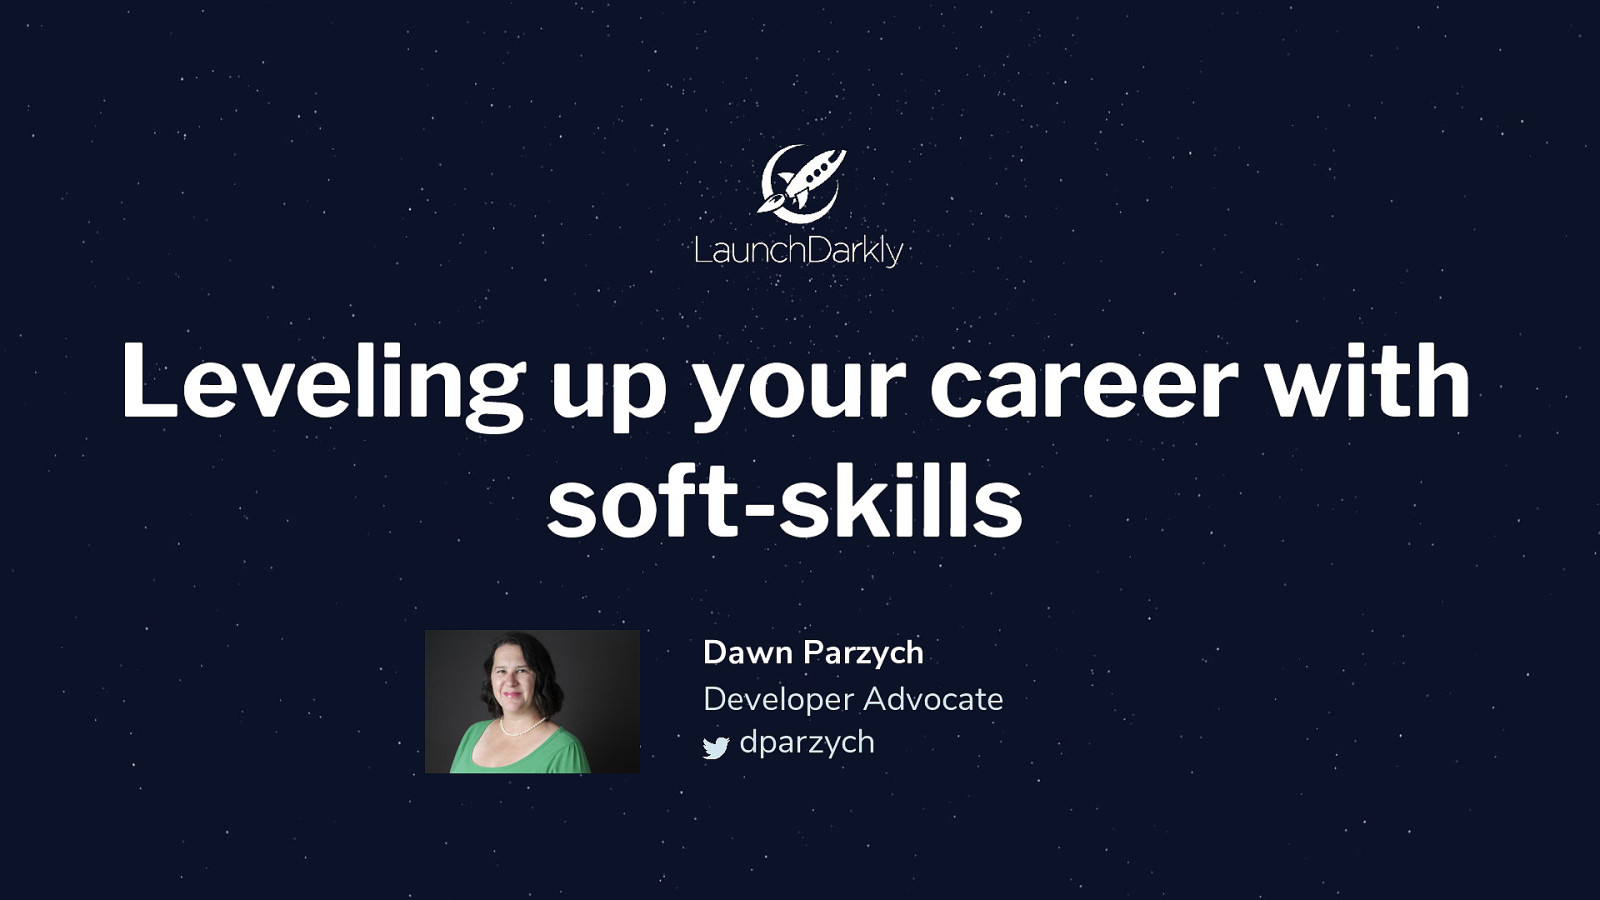 Level-up your career with soft skills